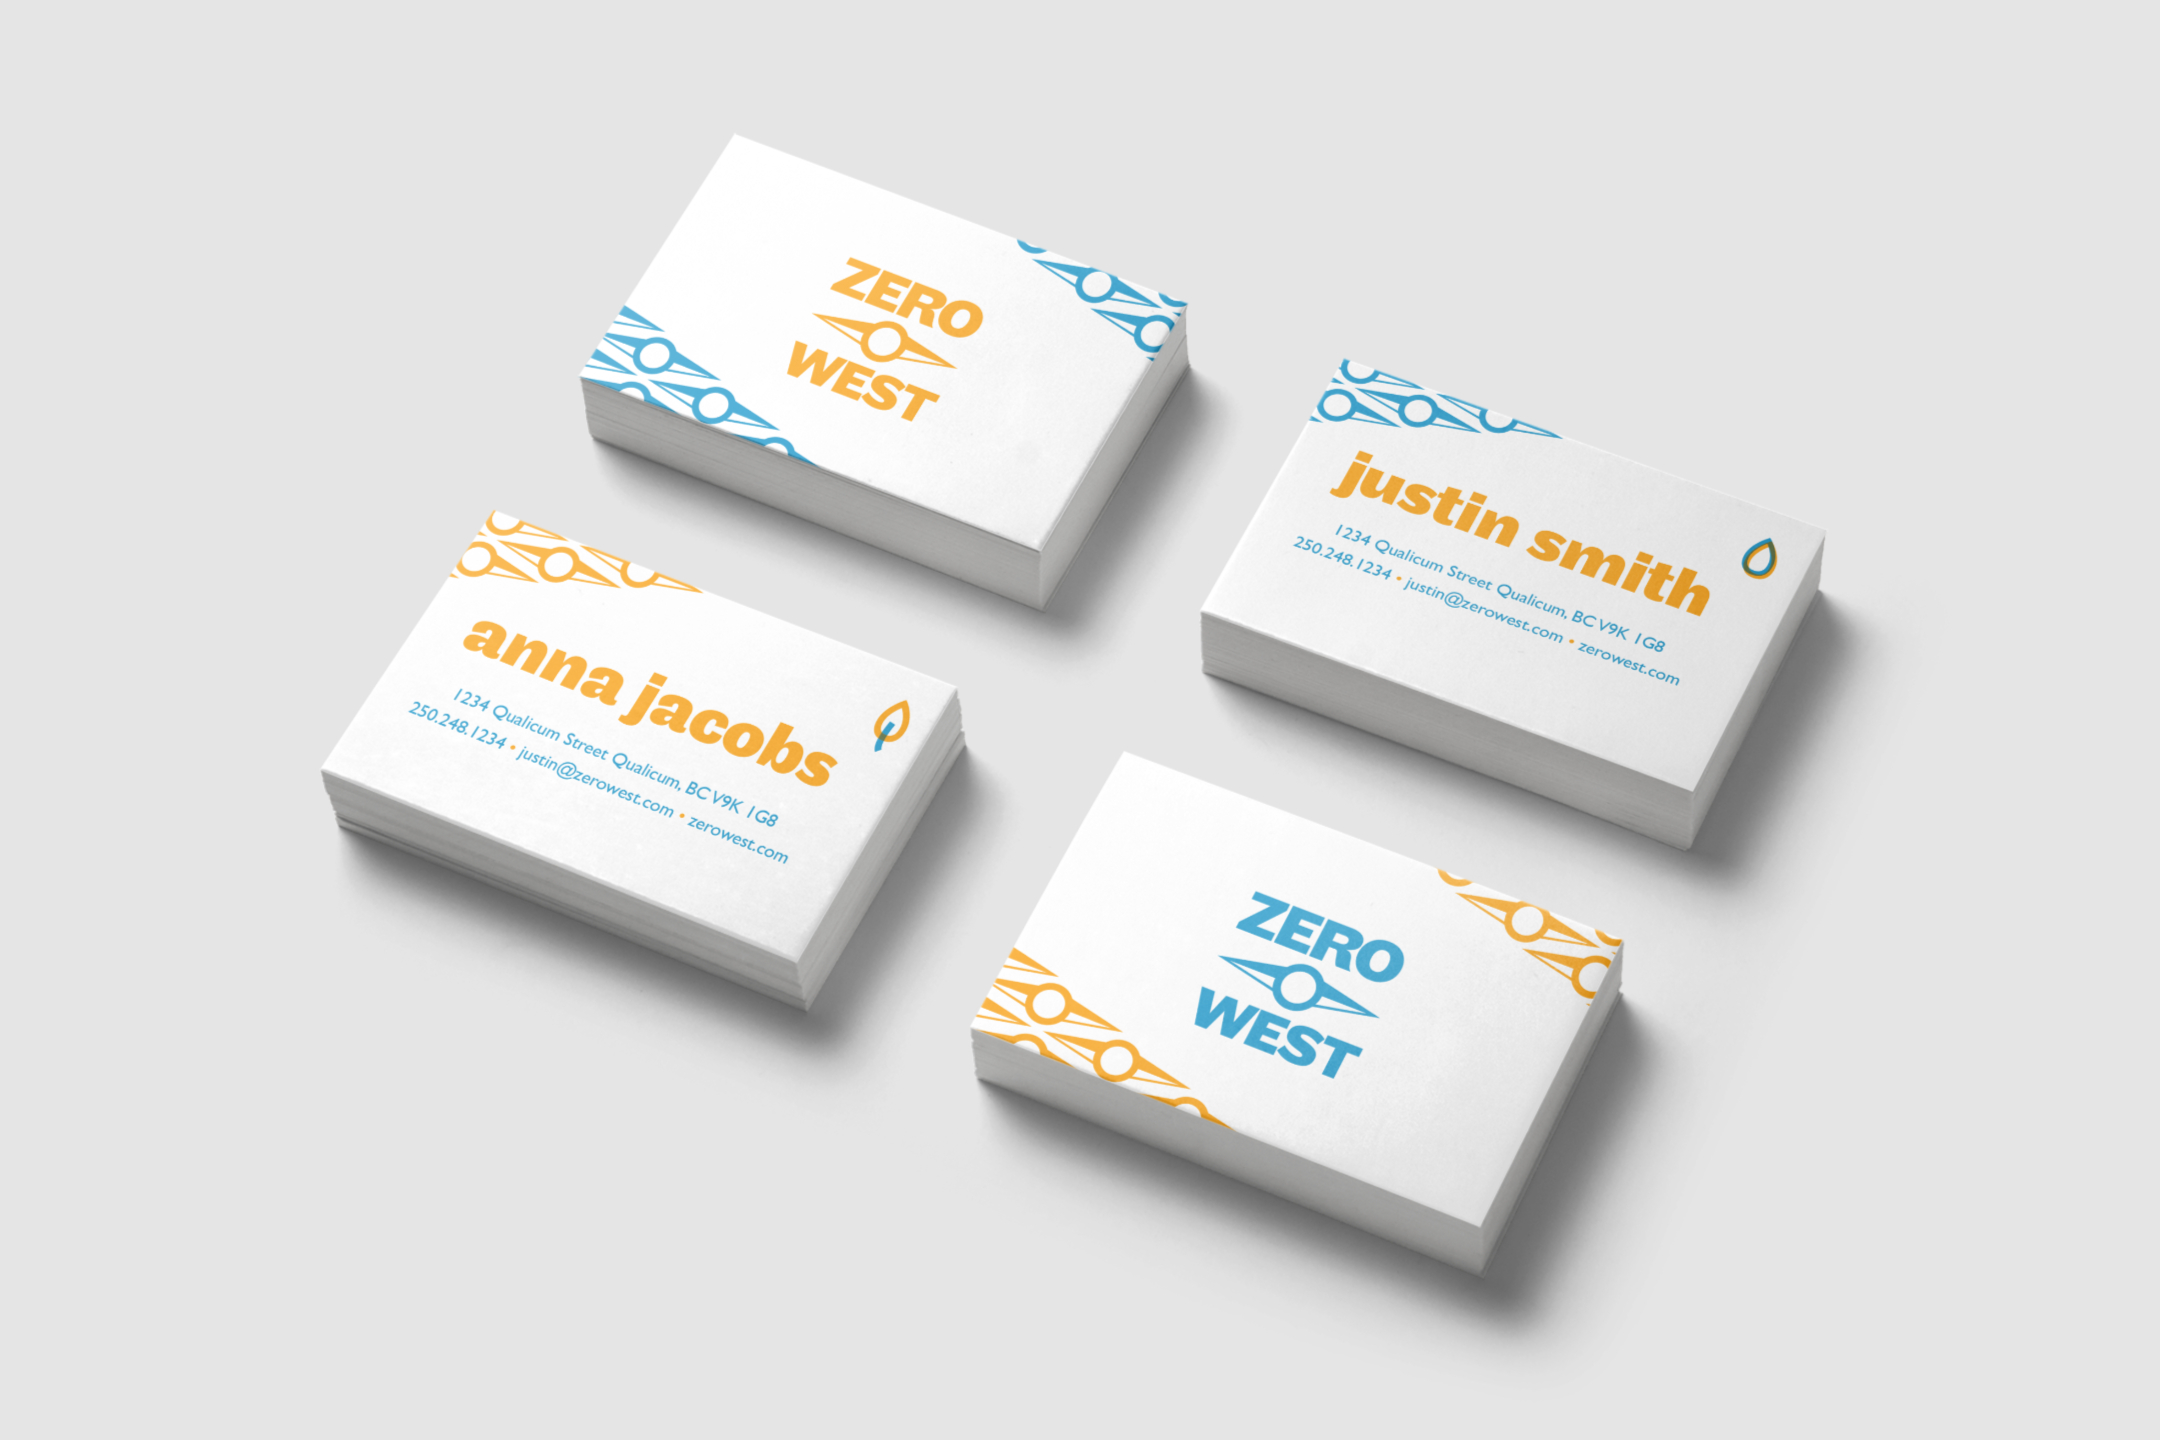 business-cards-mockup-scene@2x (1).jpeg